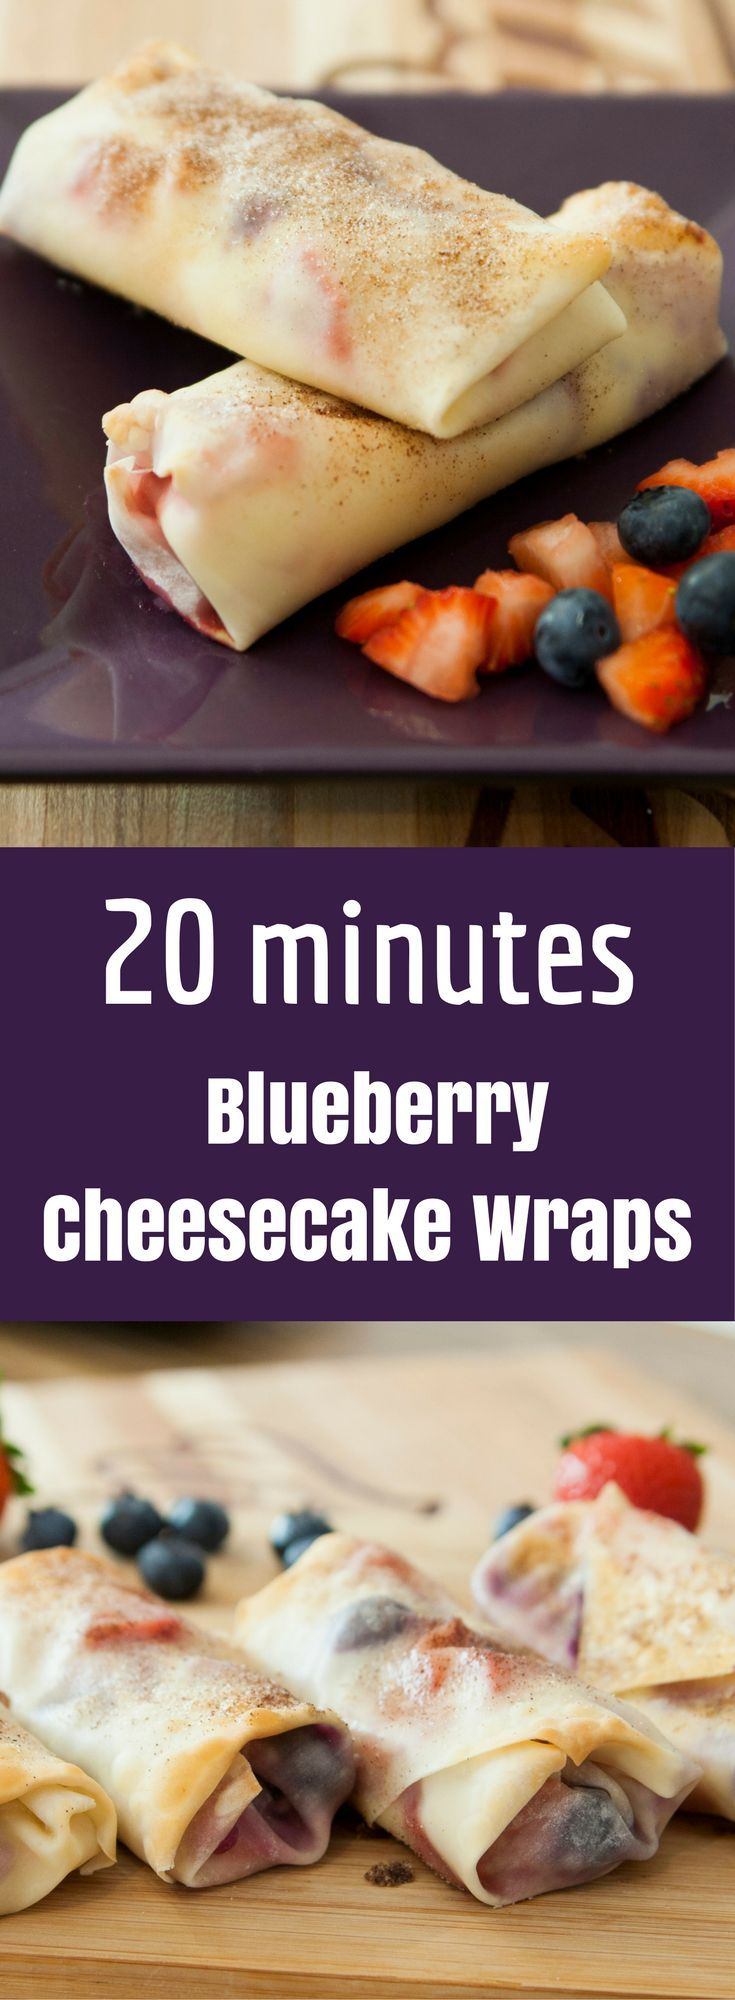 This Blueberry Cheesecake Wraps recipe uses only a few ingredients and takes about 20 minutes to make! Vegetarian recipe that's easy to make!